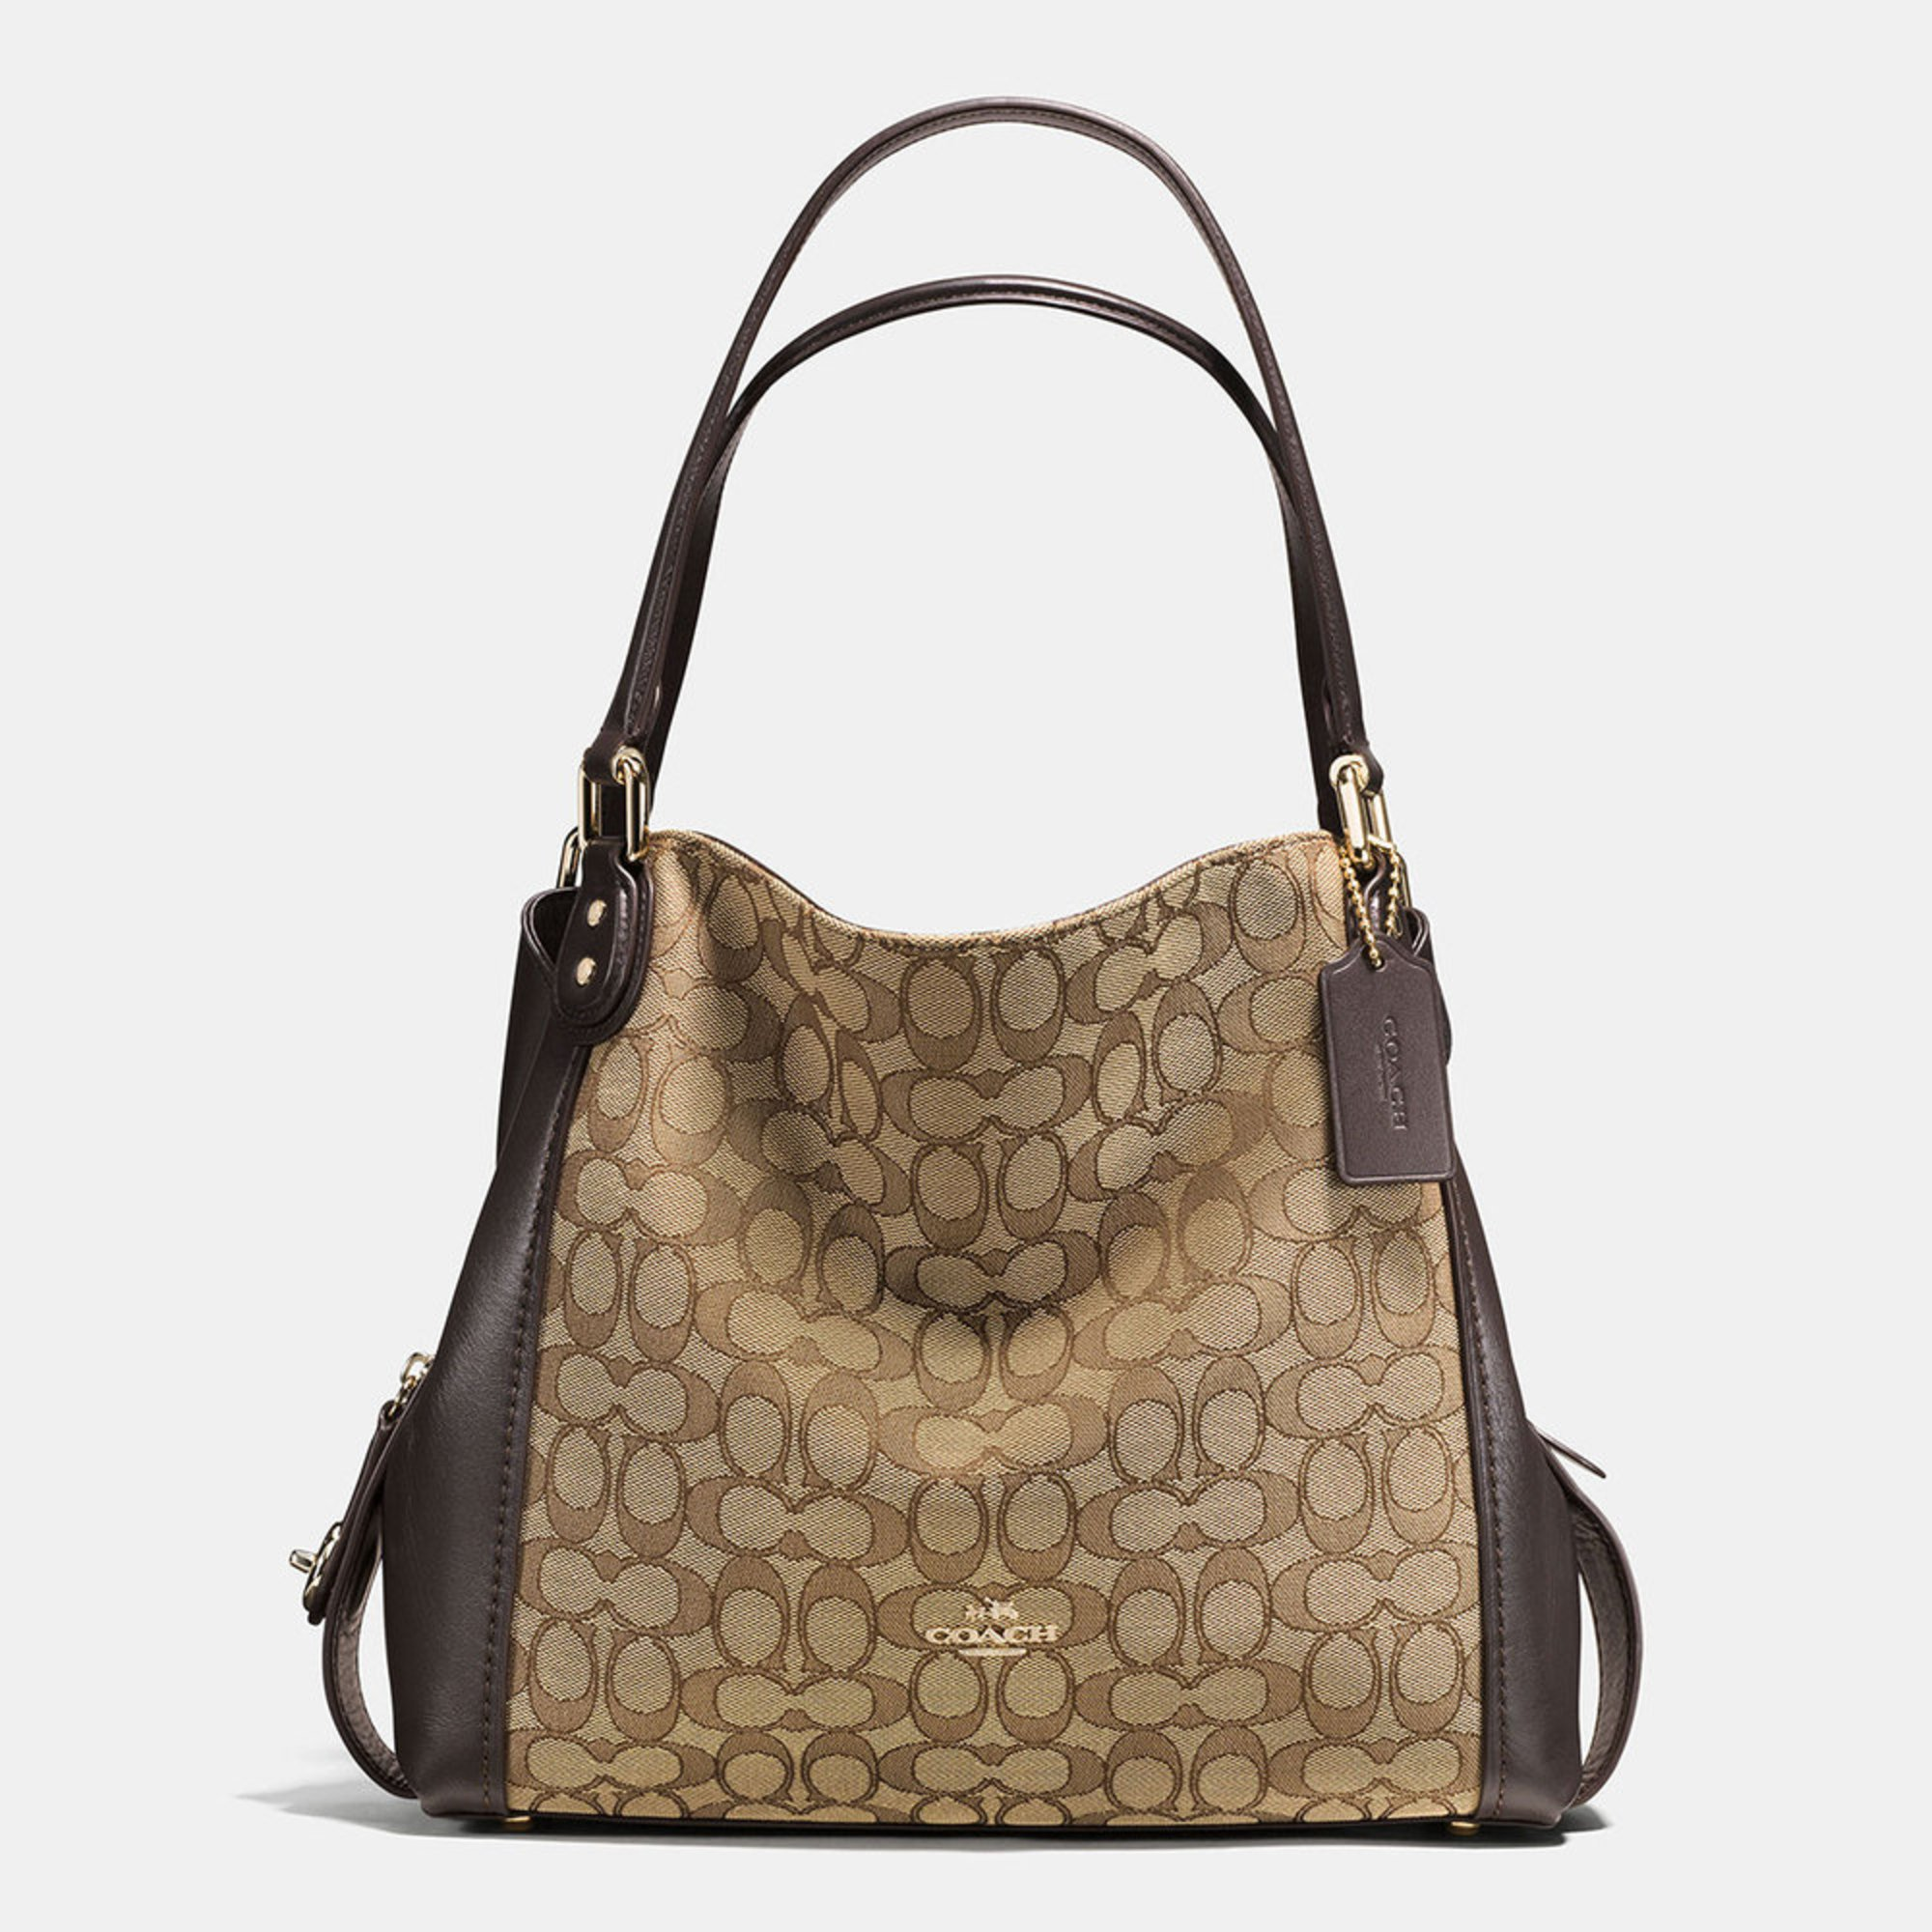 Handbags Wholesale Manufacturers in New York on failvideo.ml See reviews, photos, directions, phone numbers and more for the best Handbags-Wholesale & Manufacturers in New York, NY.